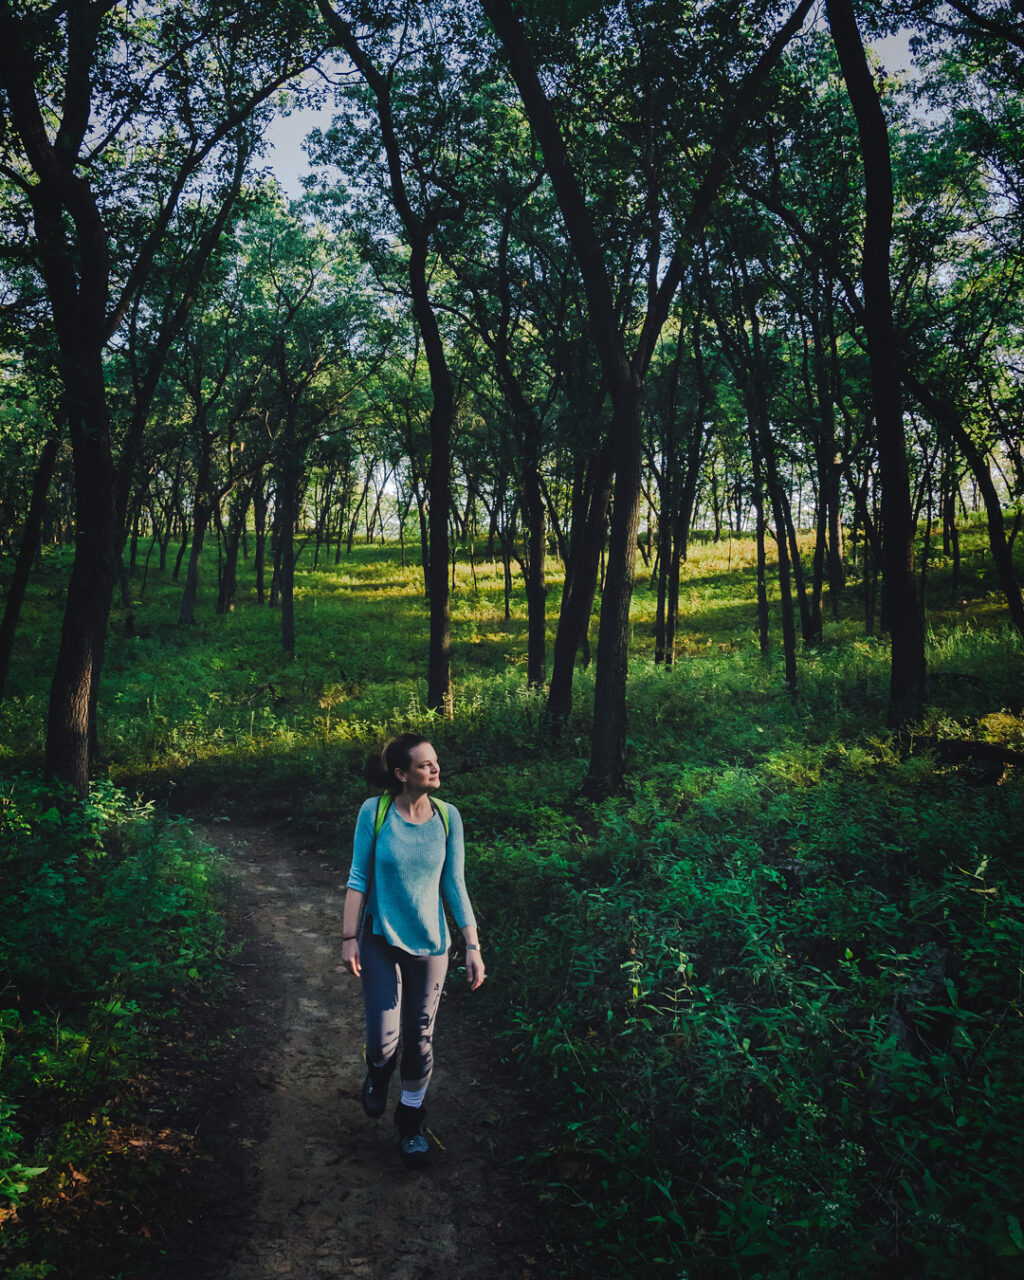 A woman backpacker walks Cowles Bog Trail in a stand of trees at Indiana Dunes National Park.